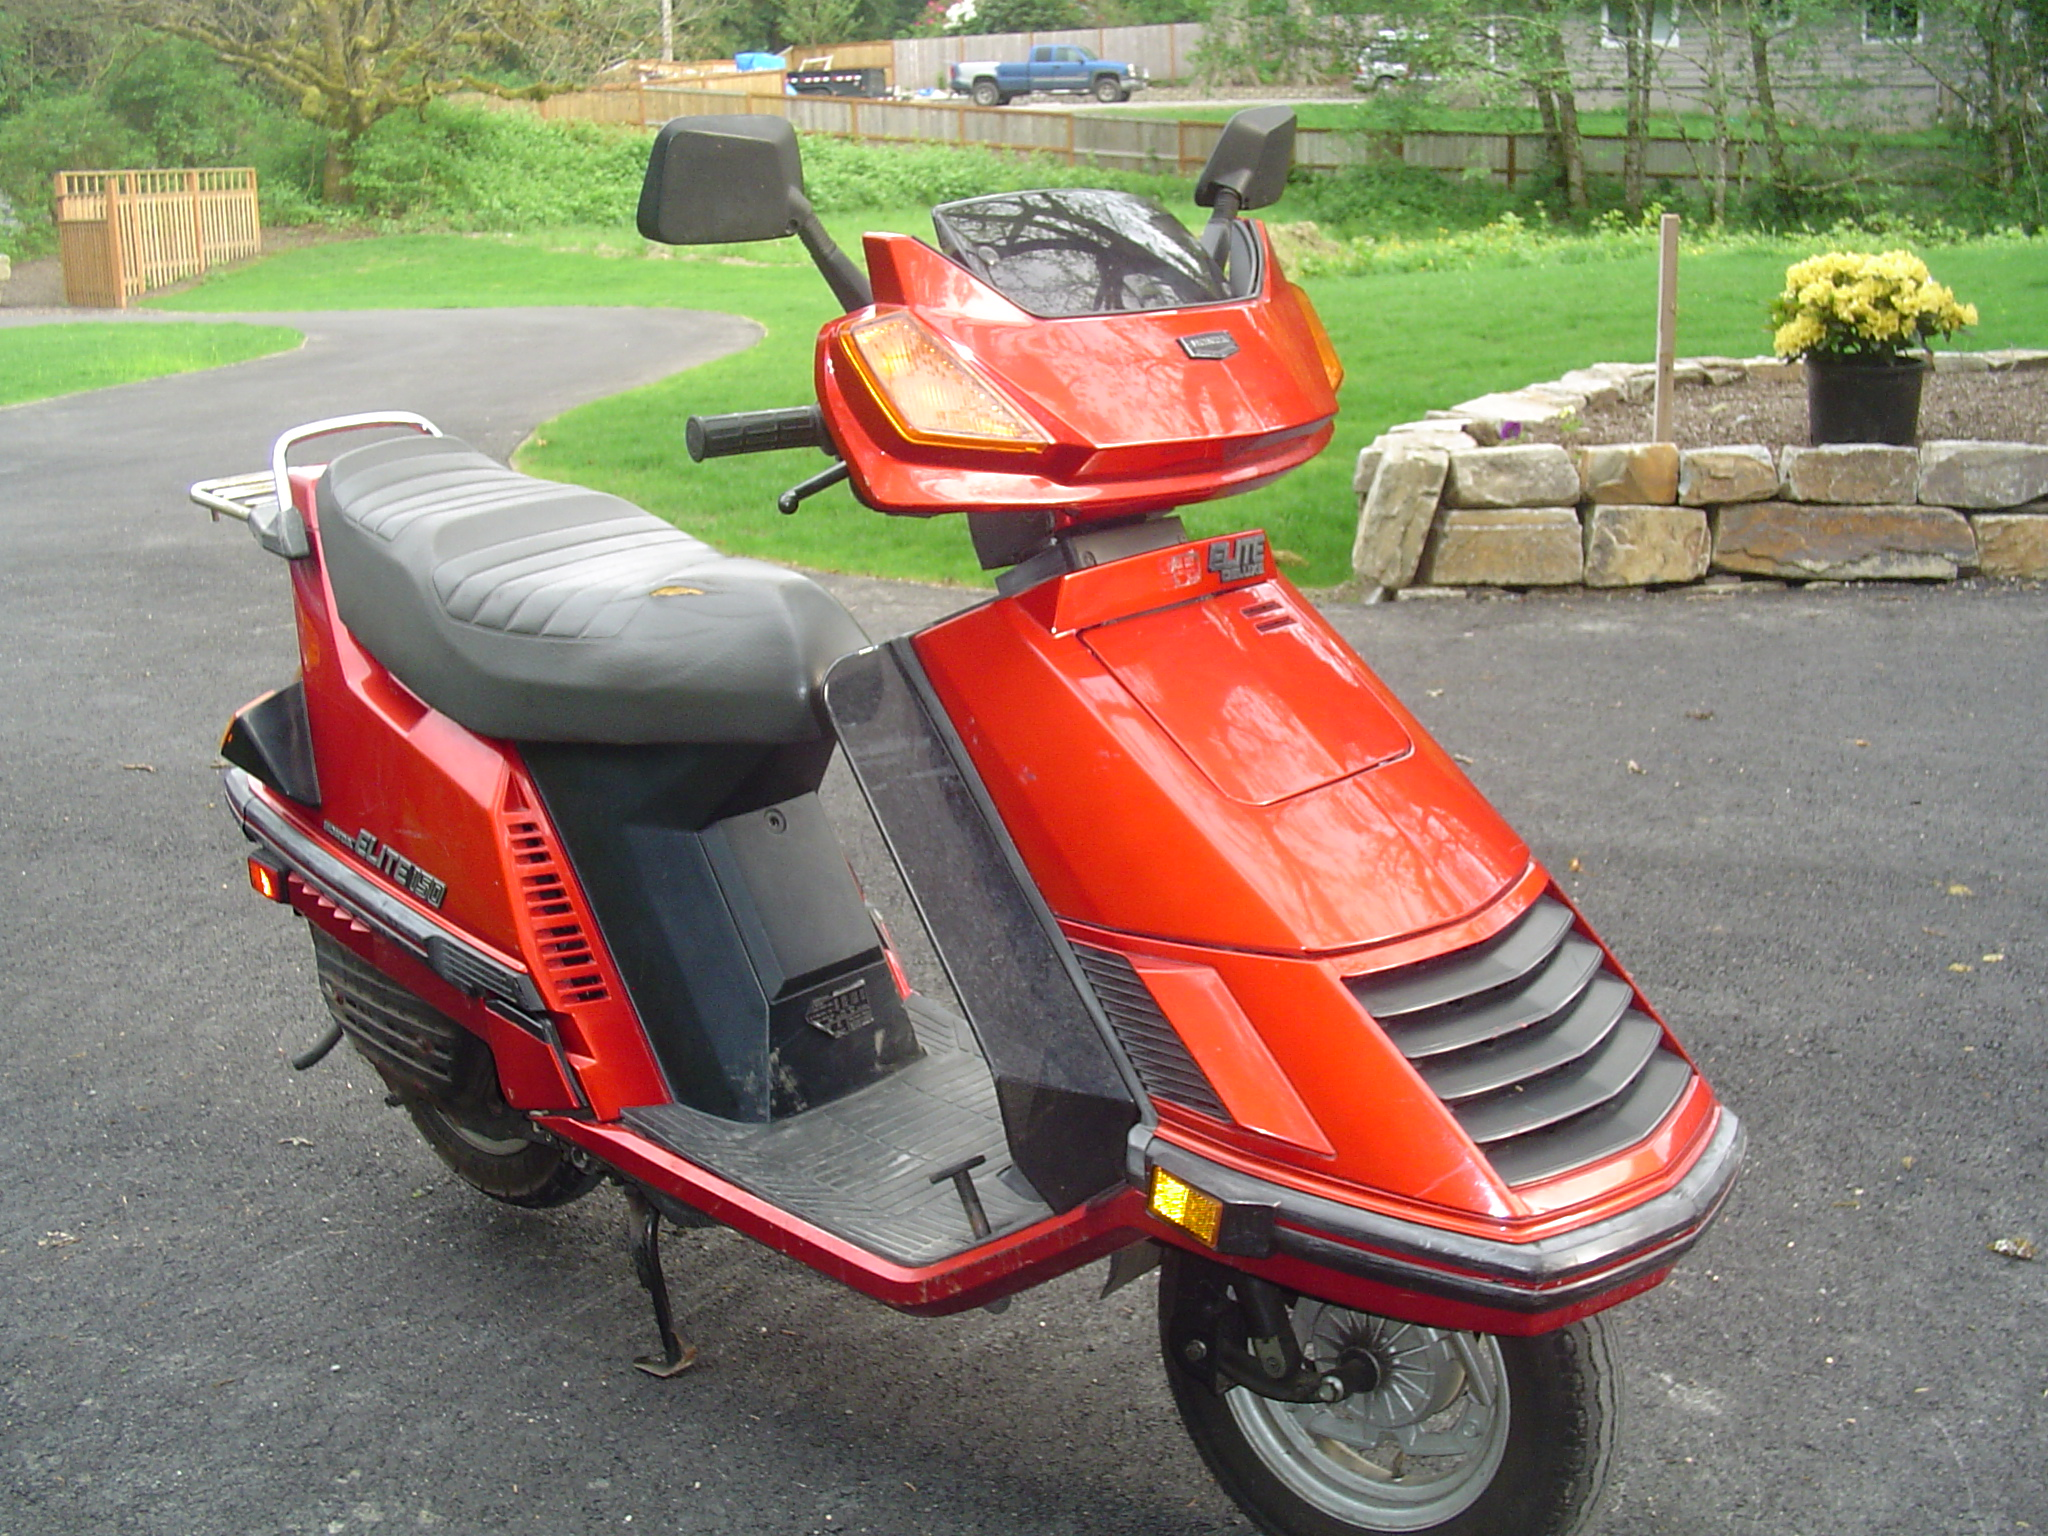 List Of Honda Elite 150 Scooters For Sale Images Home Design 1986 80 Wiring Diagram Scooter